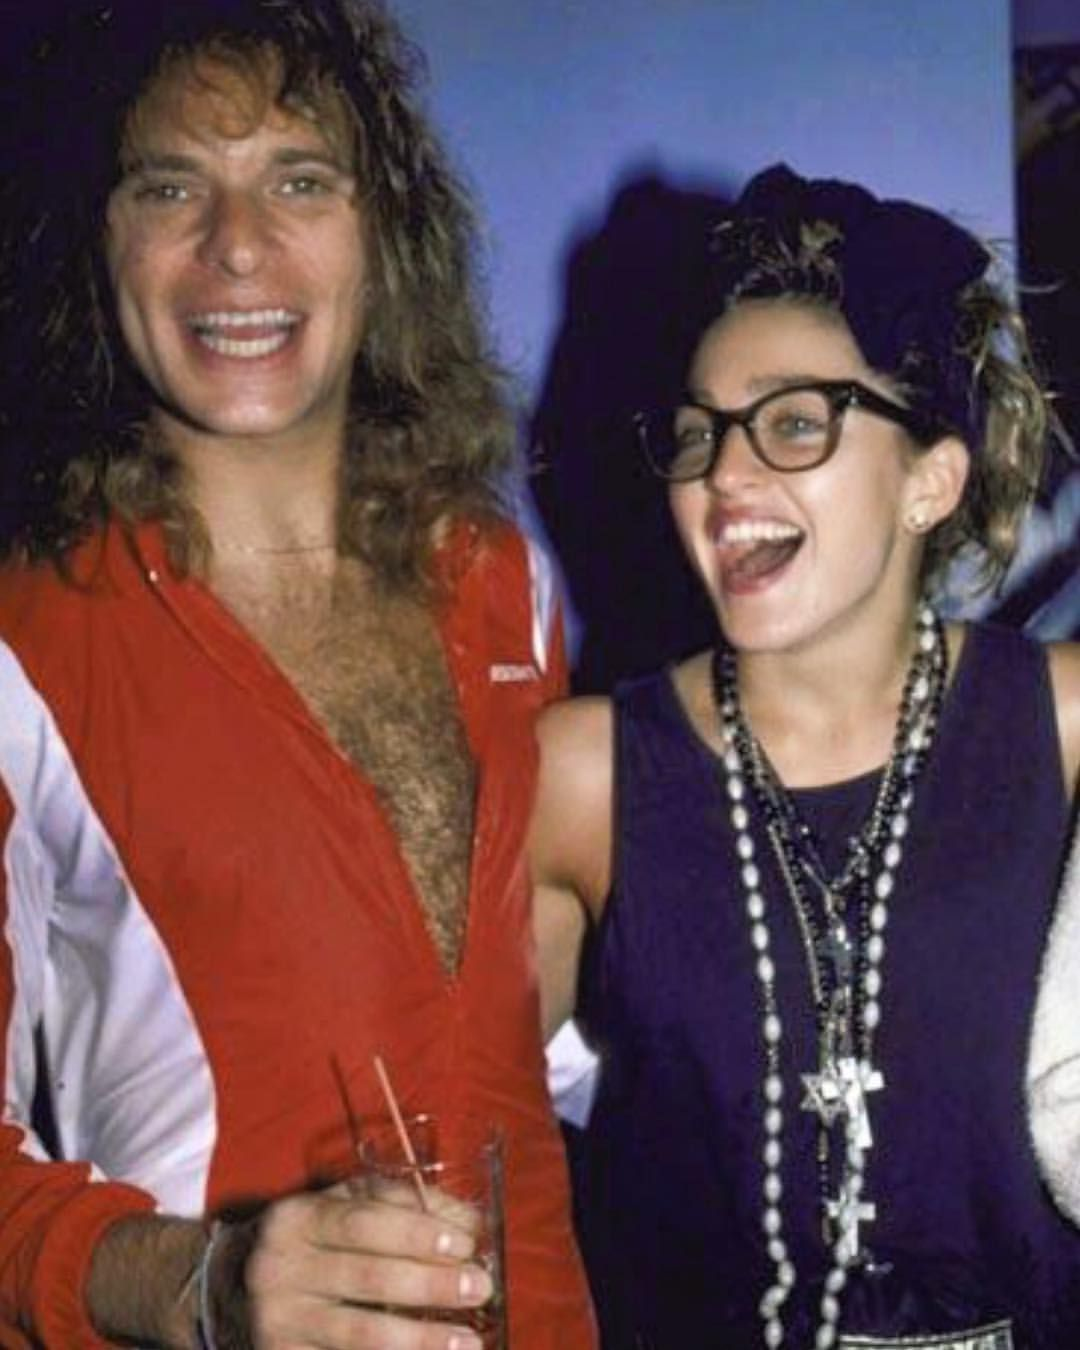 How Gorgeous Madonna Looked Before She Started Playing With Her Face Davidleeroth Sweet Catholic Girl Nice Jewis David Lee Roth Madonna Celebrities